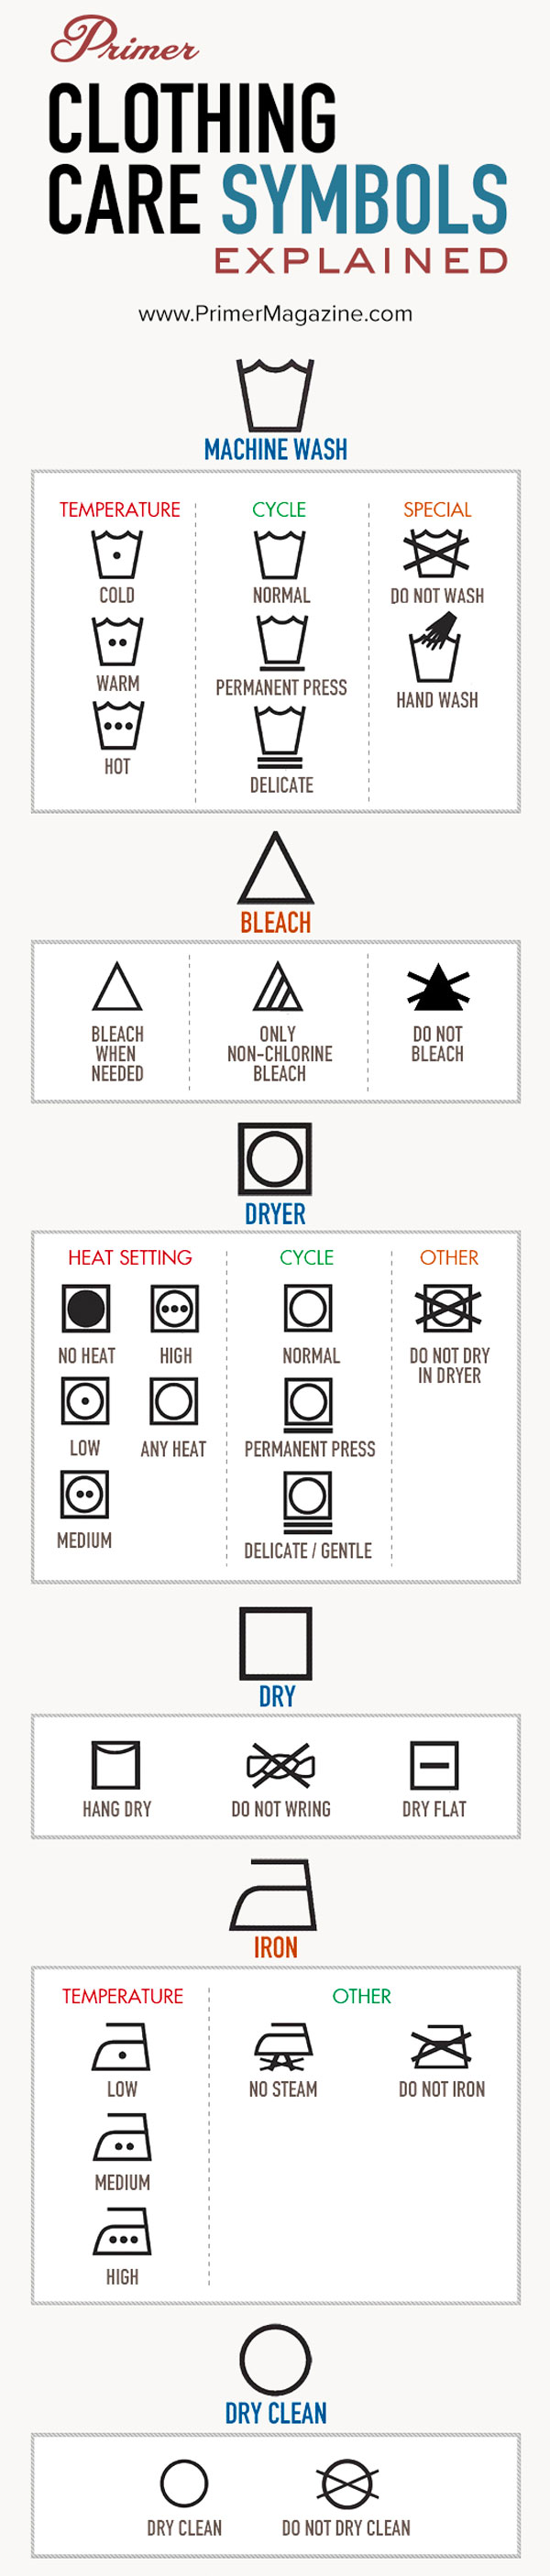 laundry clothing tag care symbols explained